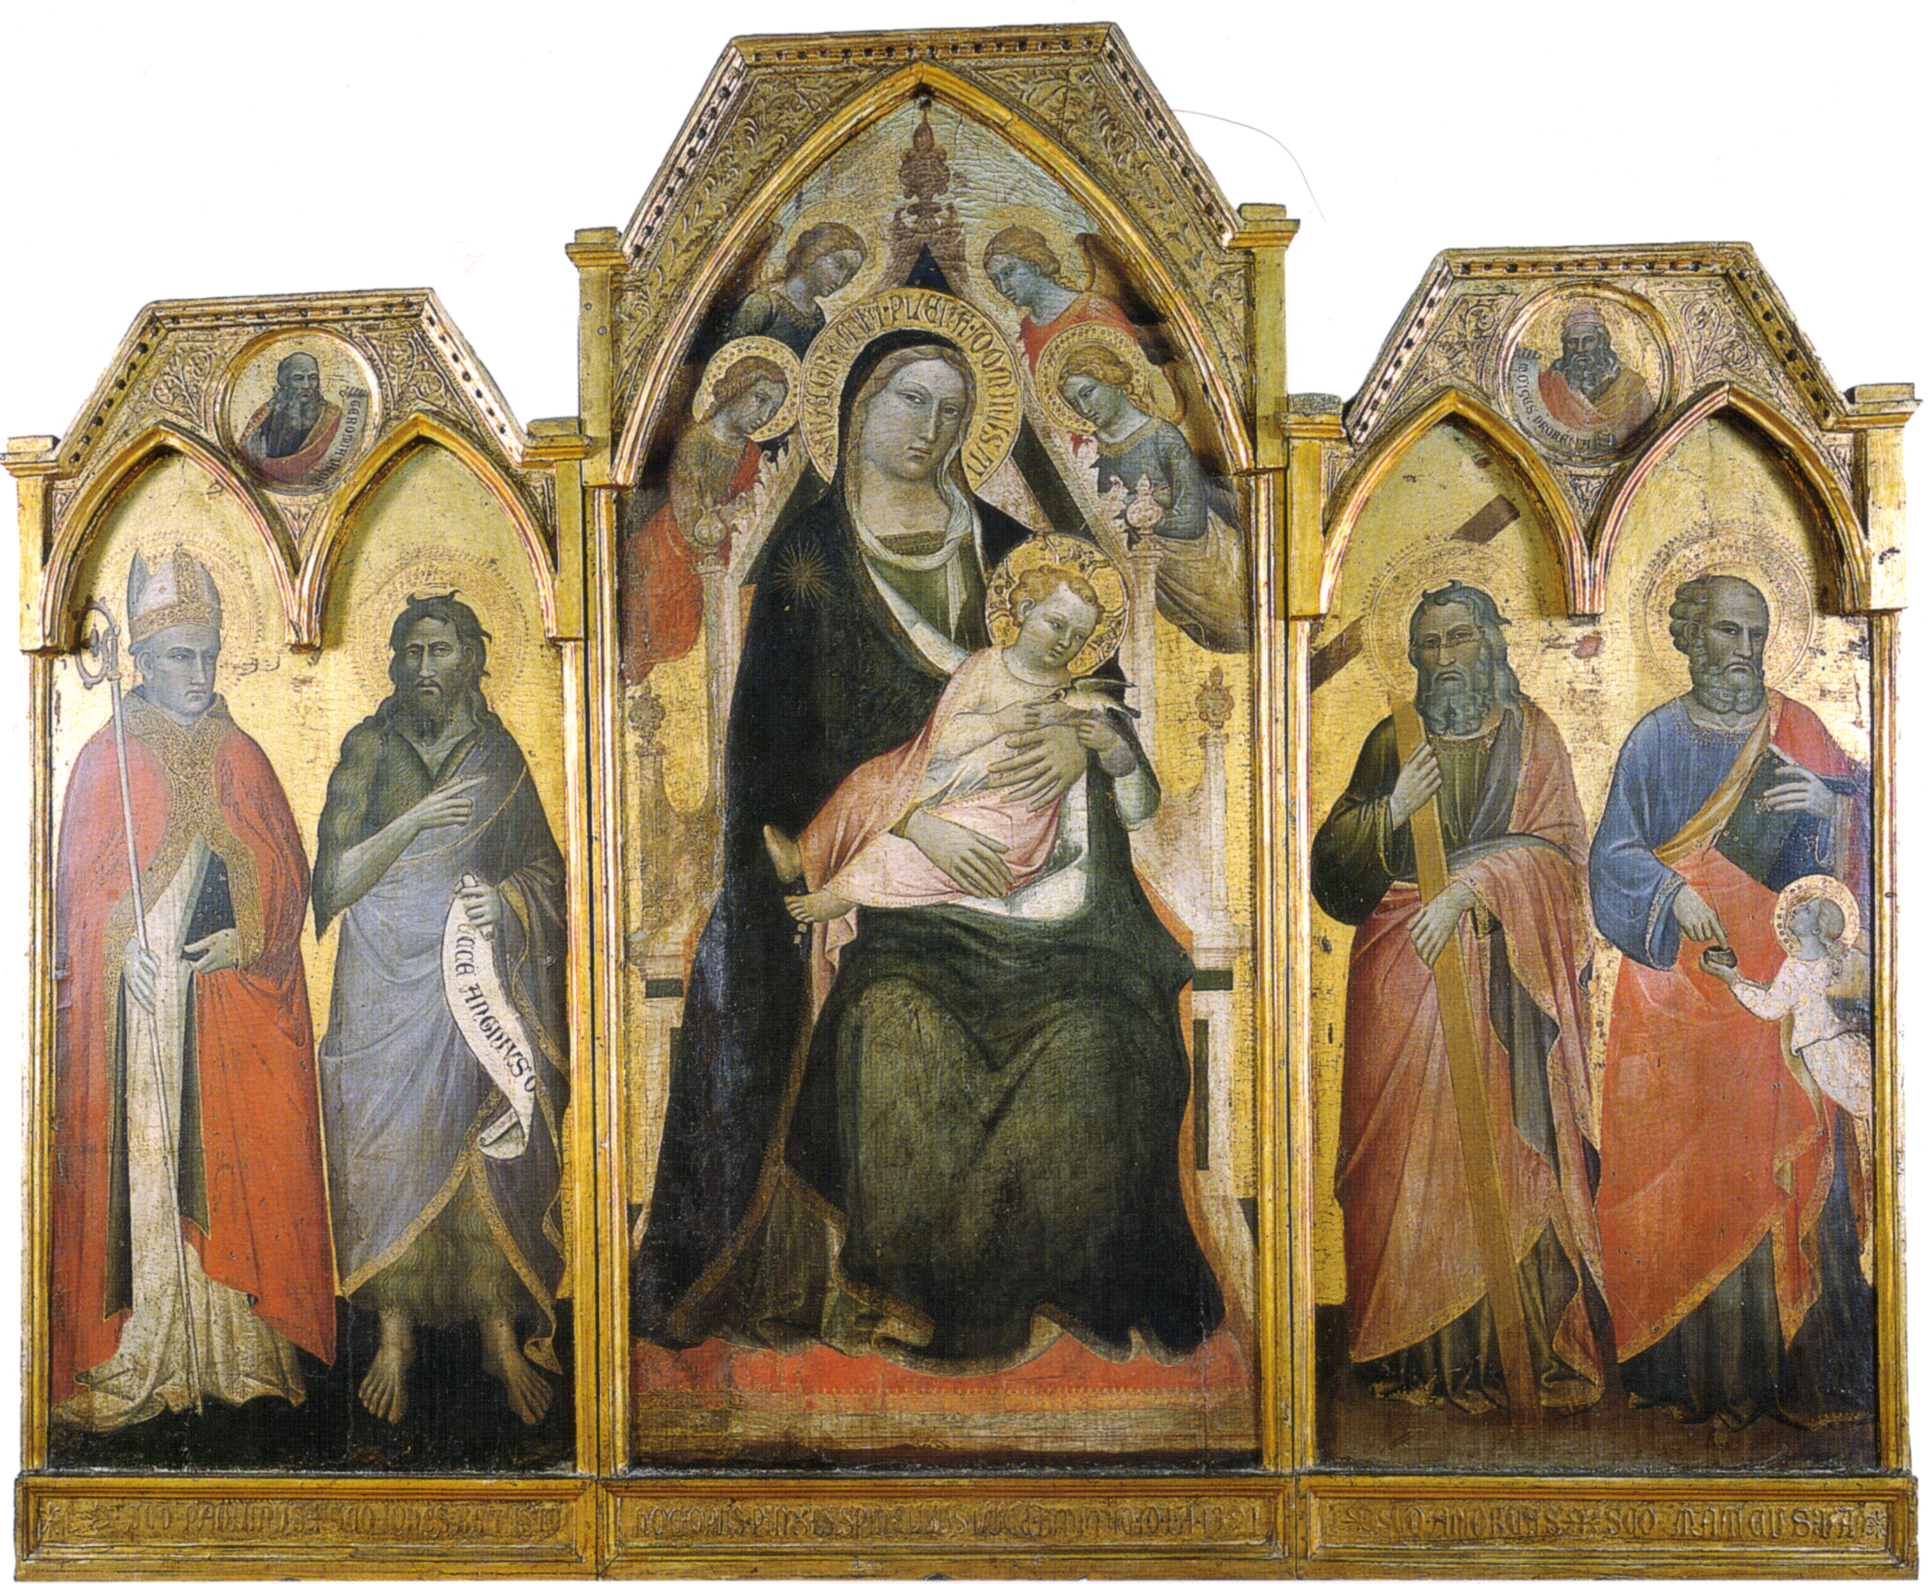 https://upload.wikimedia.org/wikipedia/commons/9/90/Spinello_aretino%2C_trittico_della_madonna_in_trono_e_santi.jpg